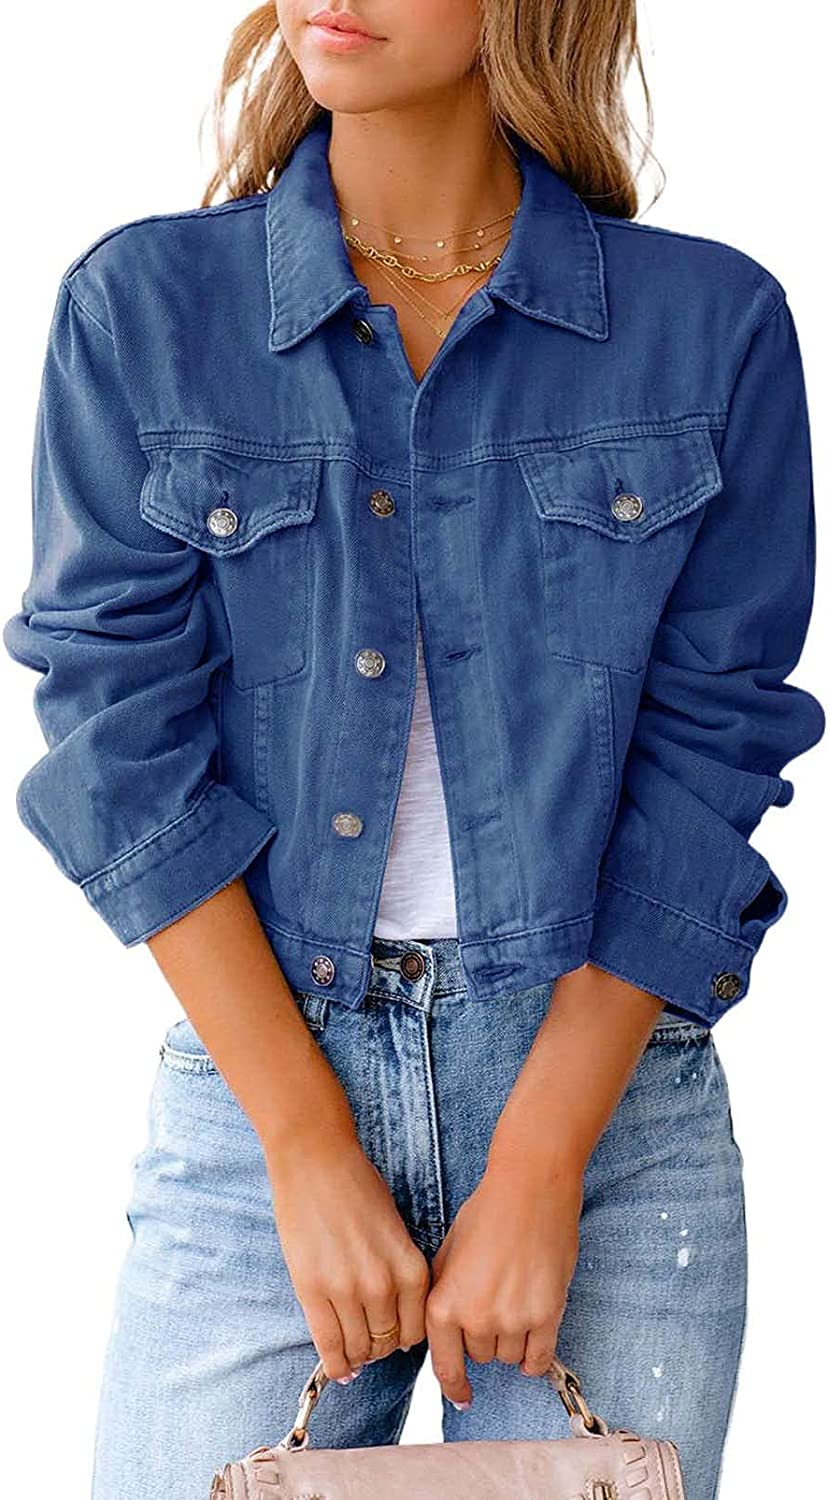 Mialoley Women's Denim Jacket Cropped Washed Button Down Ruffle Sleeve Crop Jean Jackets Coat with Pockets